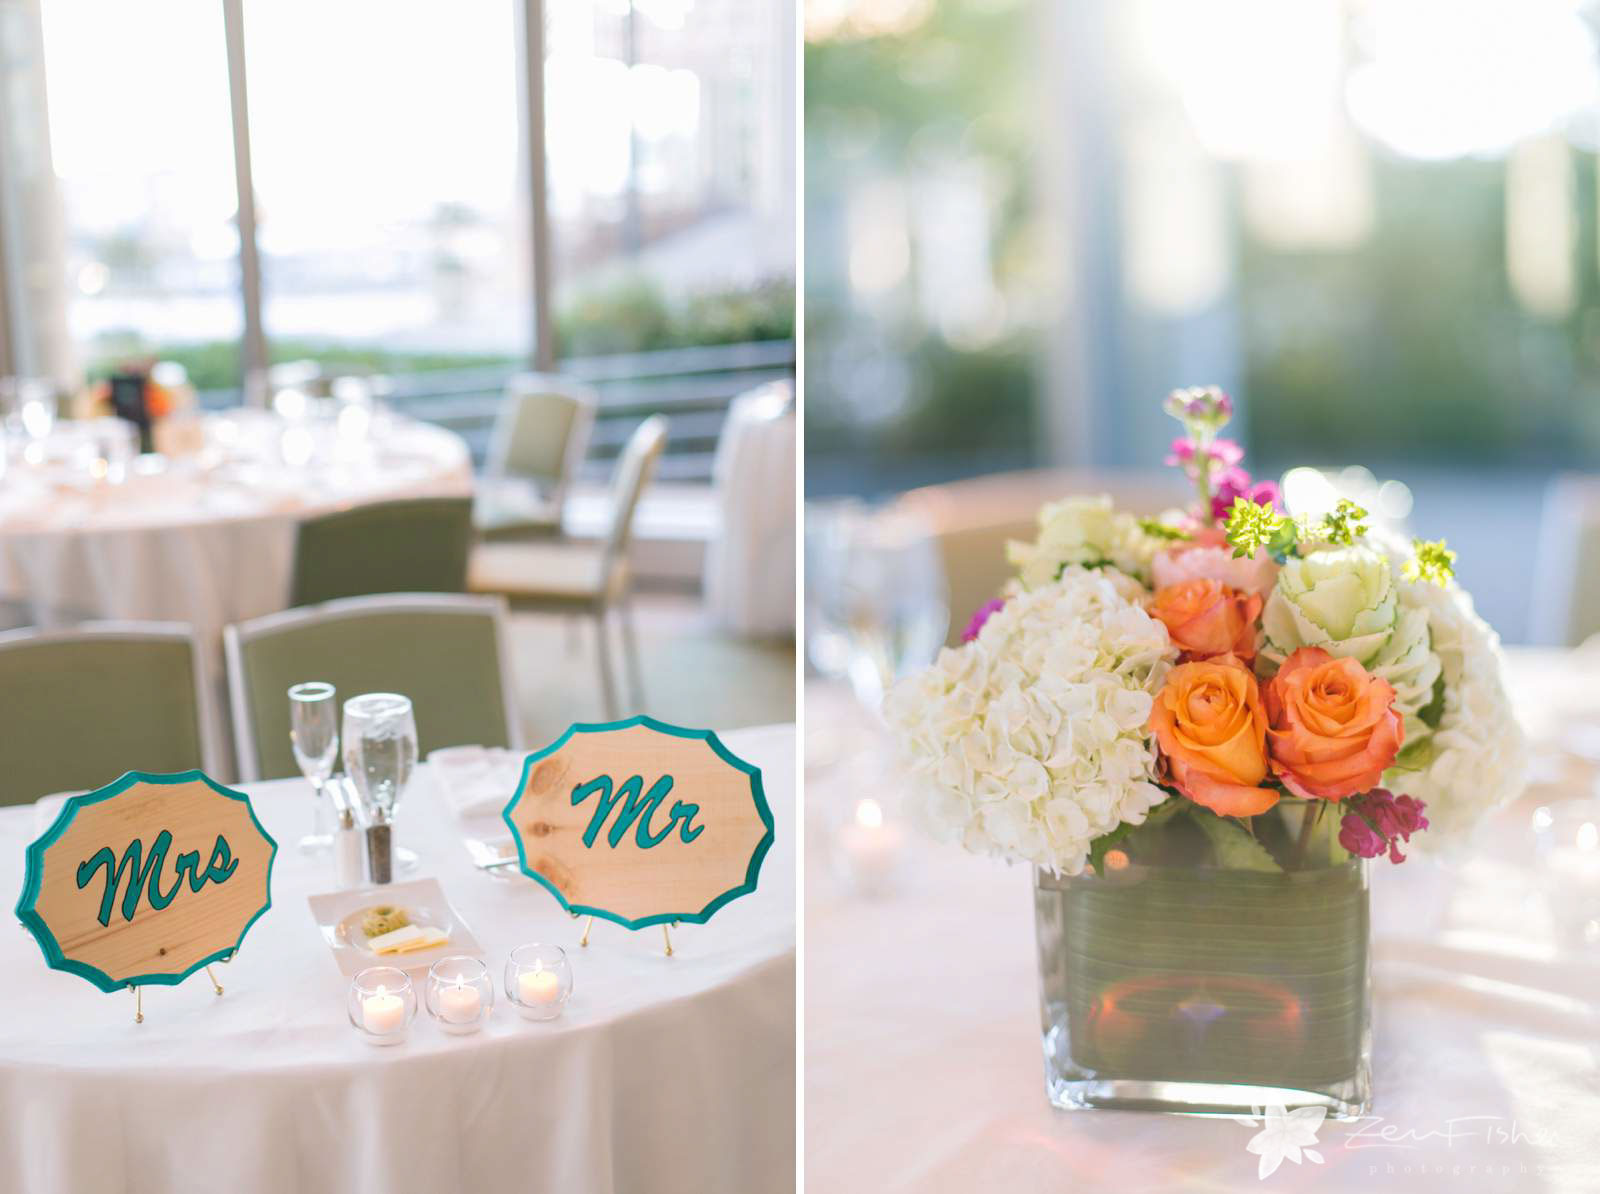 Sweetheart table with woodcarved Mr. and Mrs. signs, floral centerpieces with orange roses